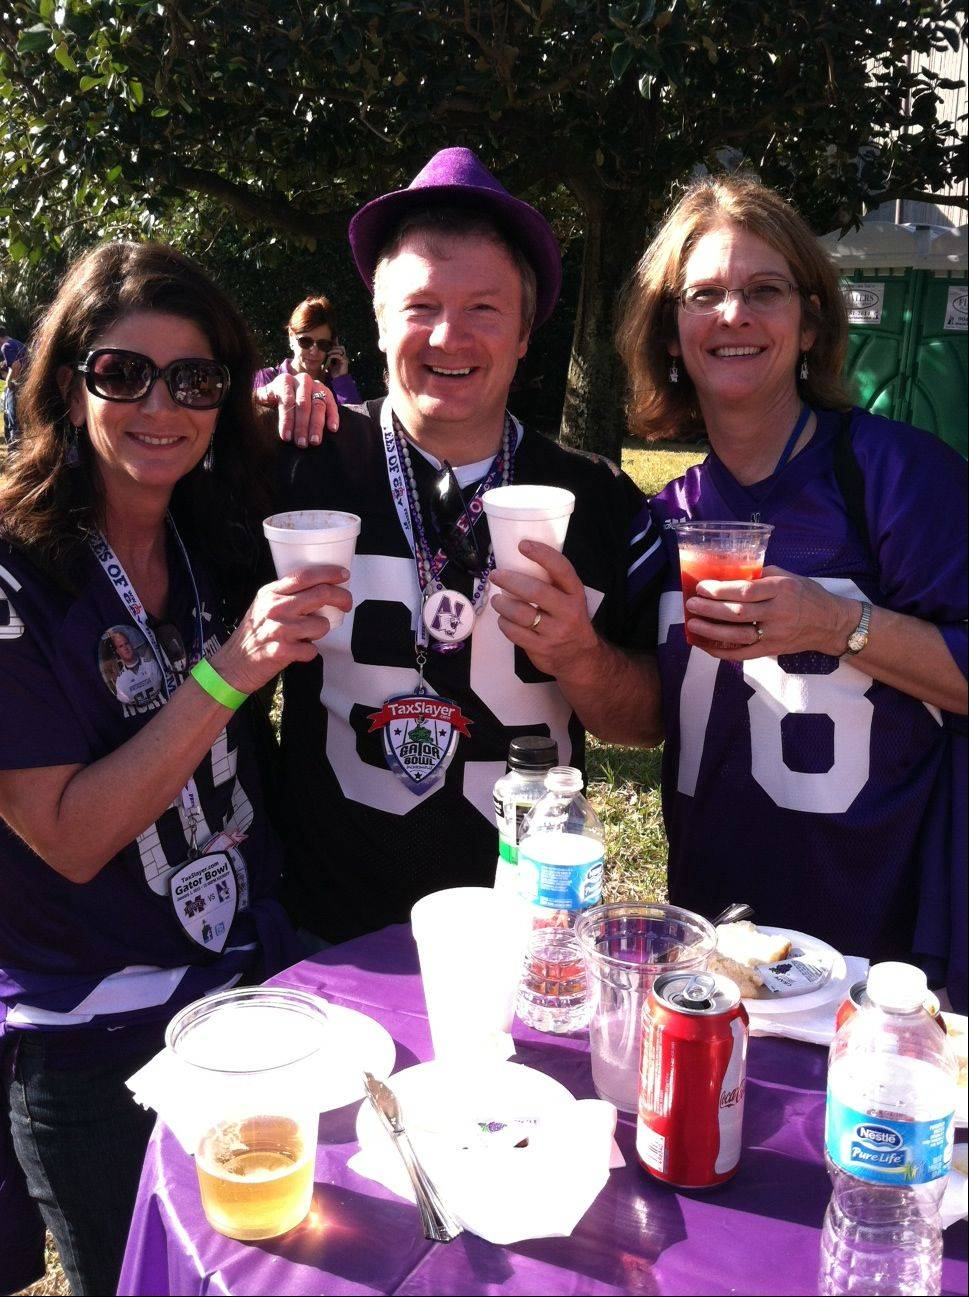 The pre-game tailgate with our friend Clare Jorgensen (her son Paul wears #81 for NU) at the Gator Bowl in Jacksonville, Florida at Everbank Field.